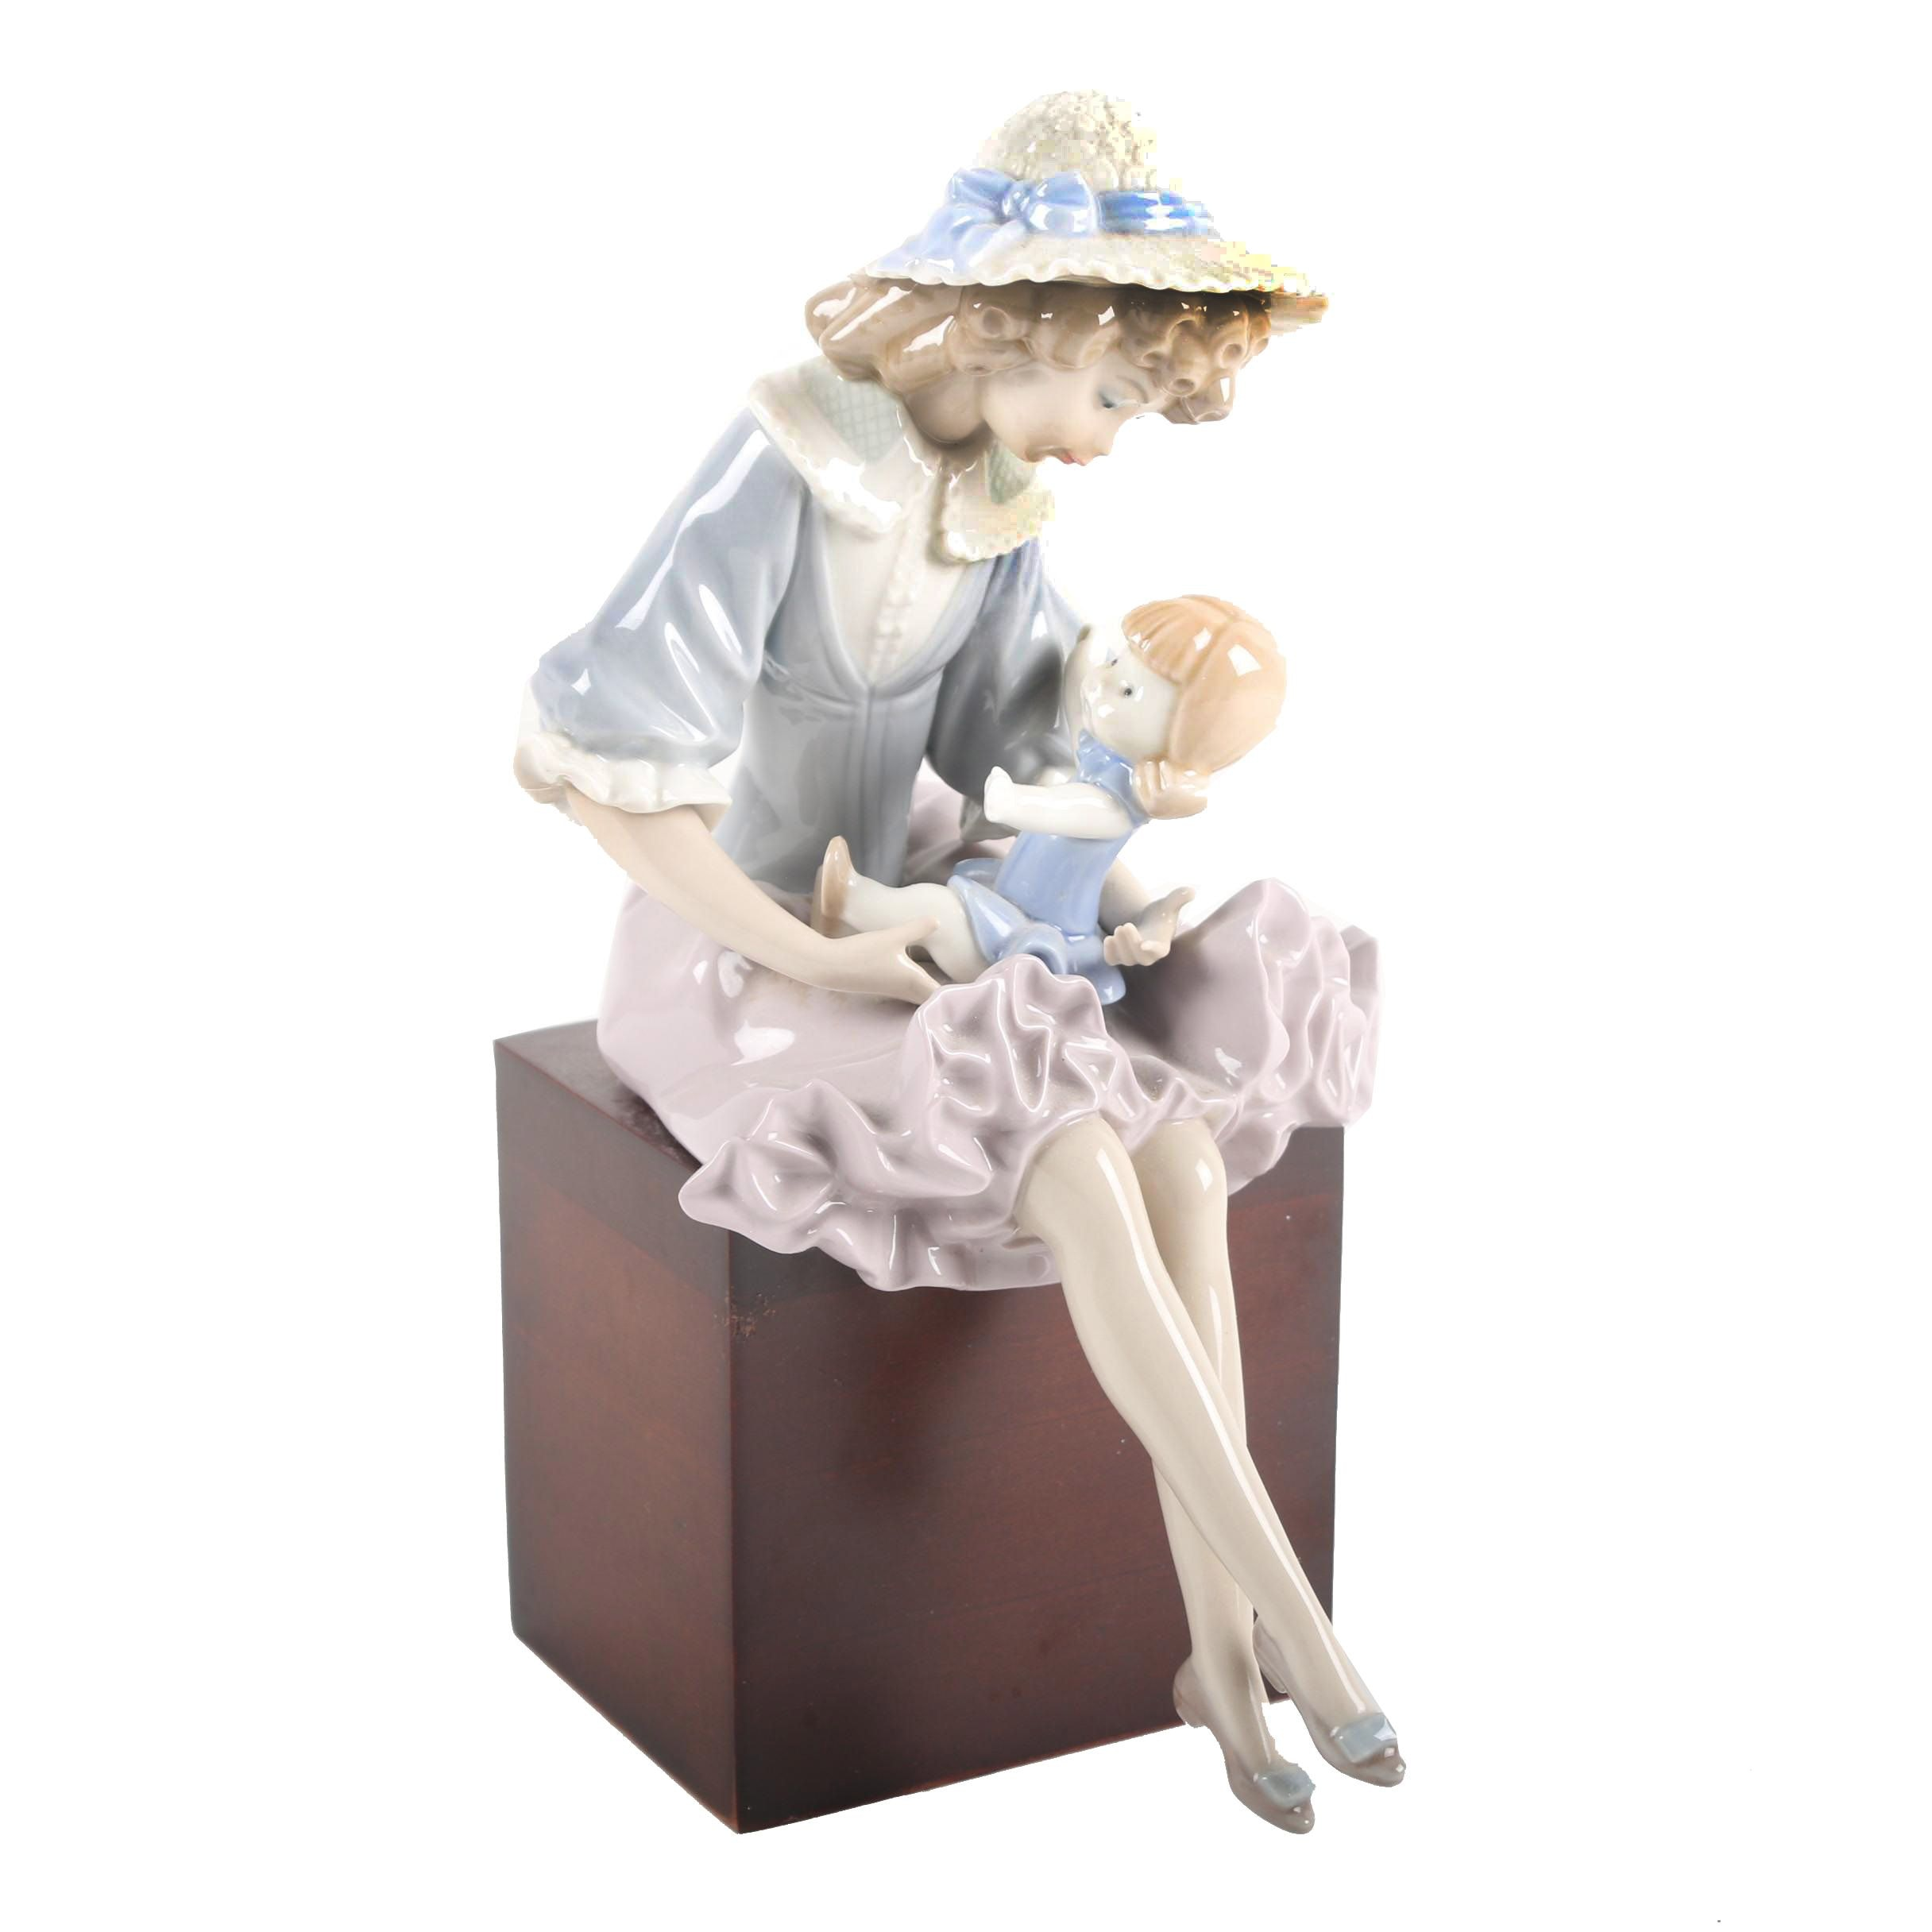 "Lladró Hand-Painted Porcelain Figurine ""Sunbonnet Girl with Doll"""